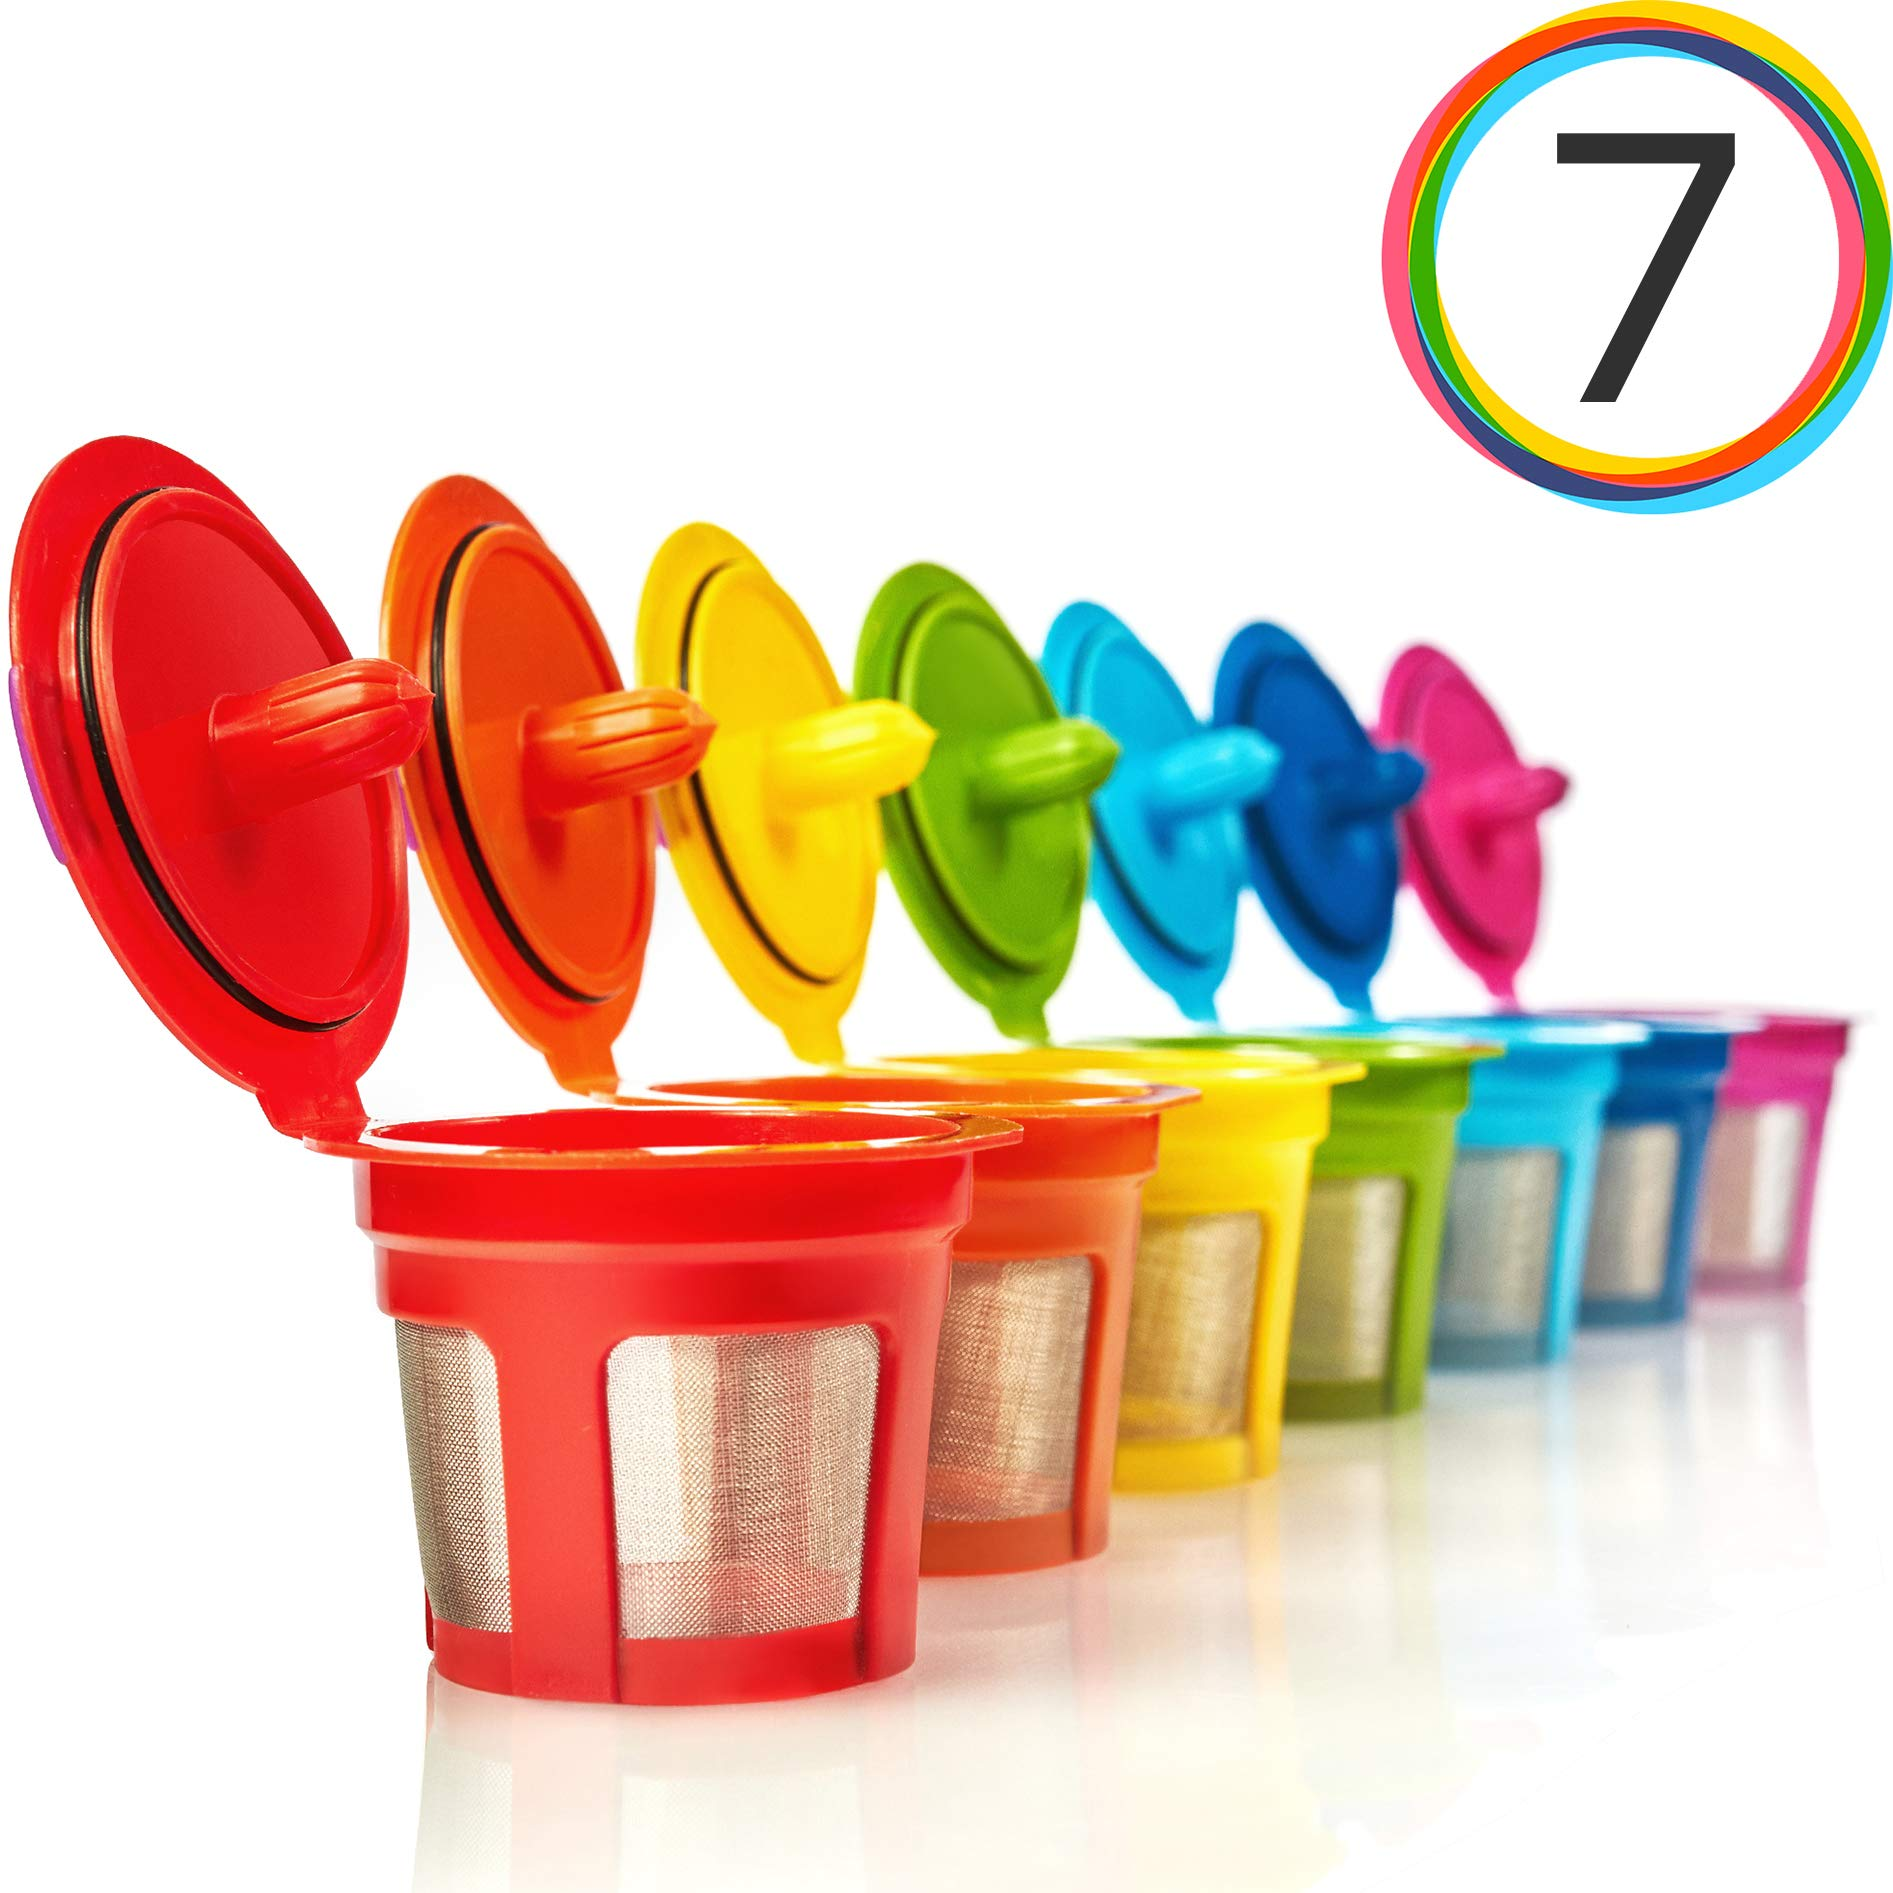 GoodCups 7 Reusable Rainbow Colors K Cups Refillable KCups Coffee Filters for Keurig 2.0, K200, K250, K300, K350, K400, K450, K460, K500, K550, K560 and 1.0 Brewers